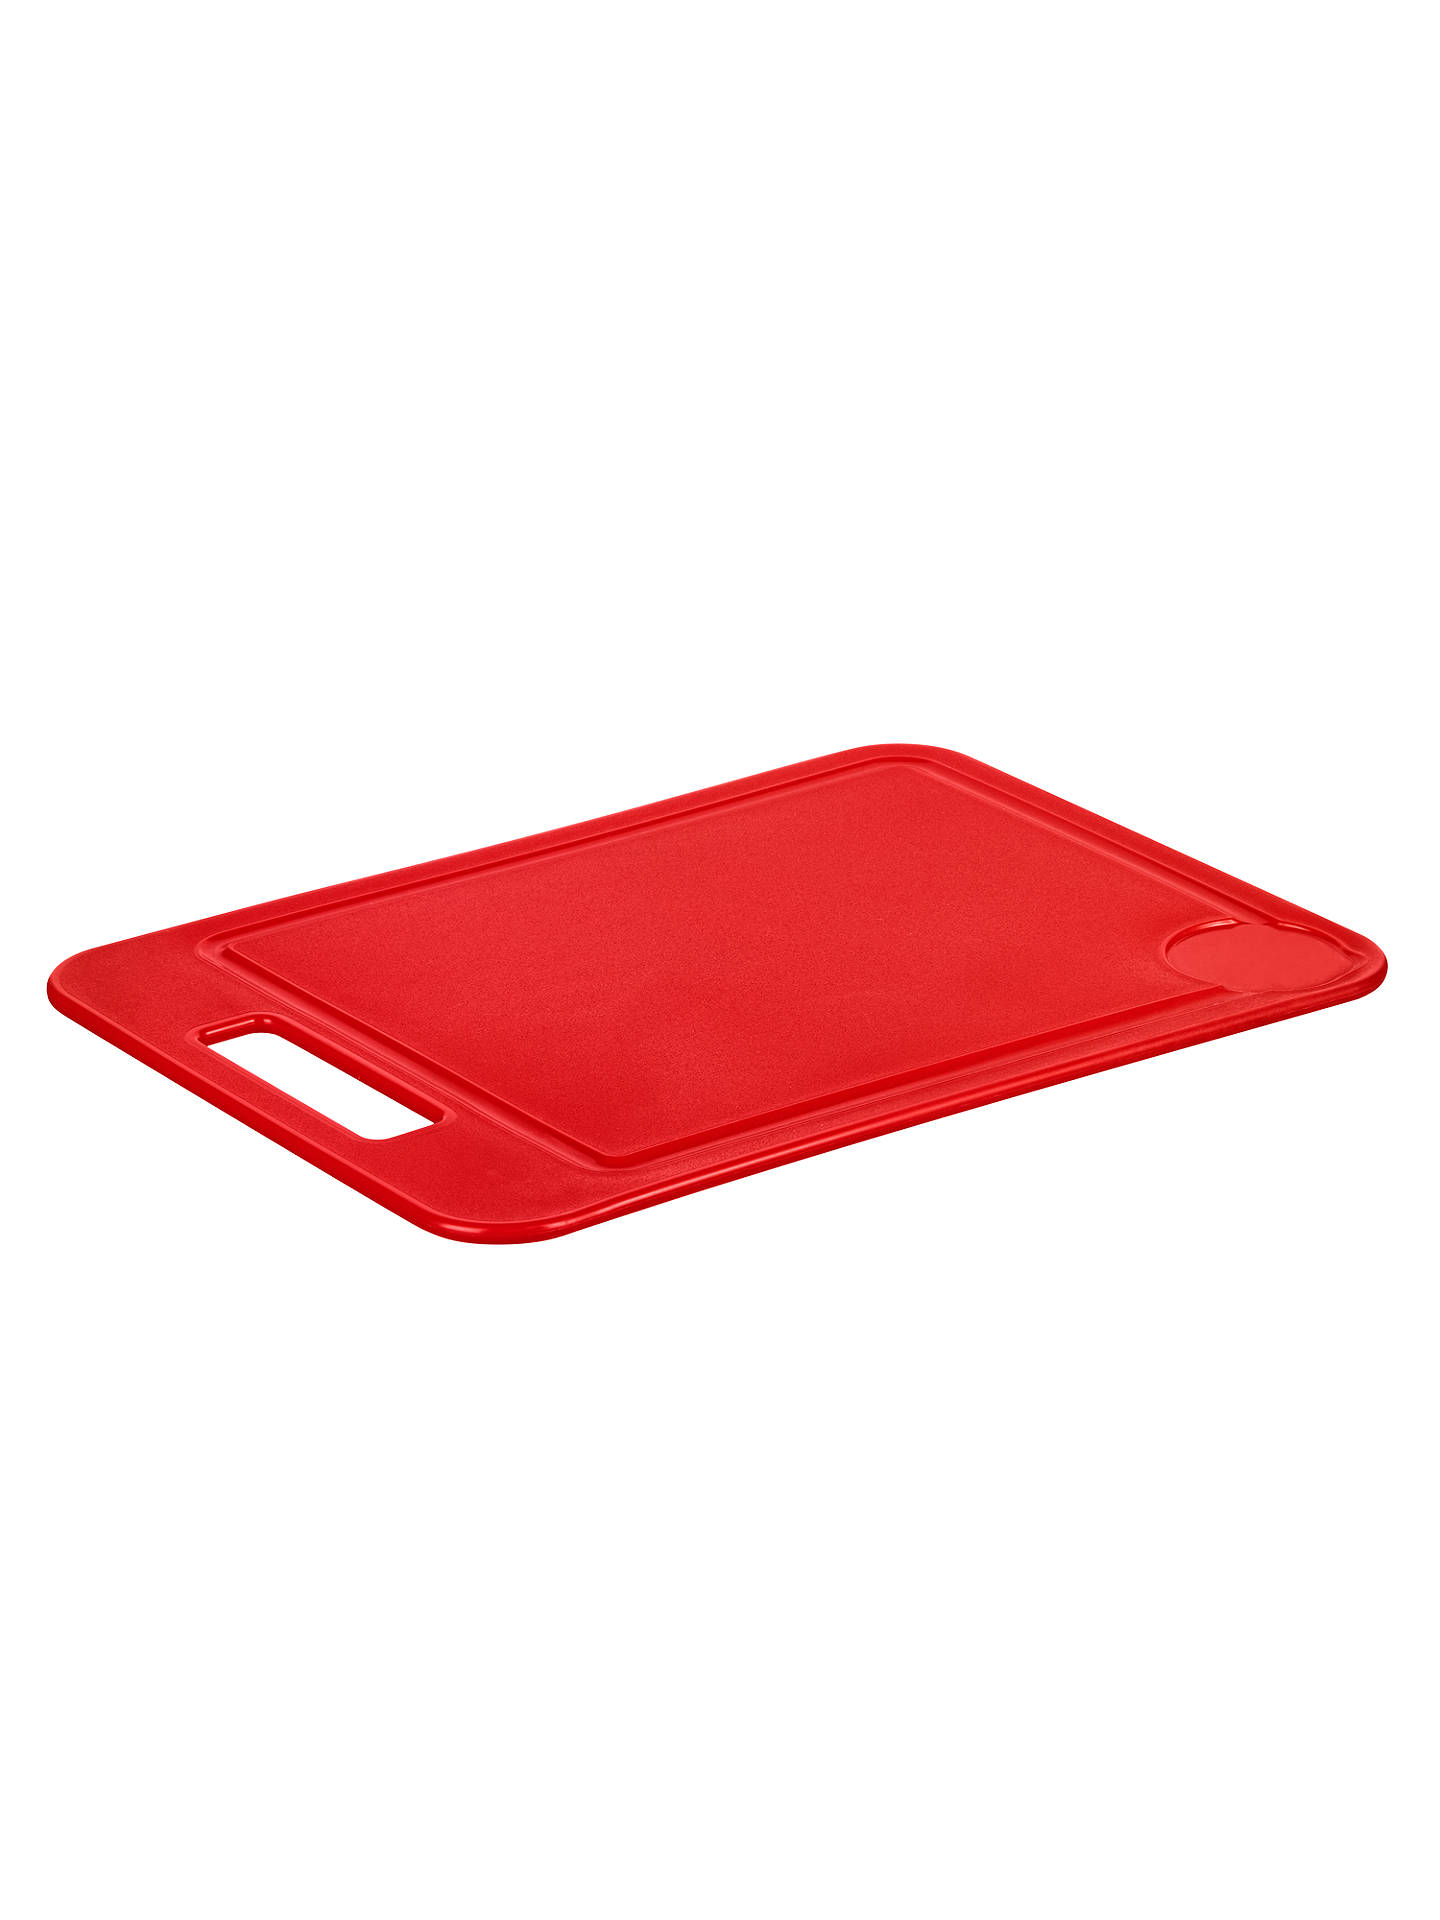 BuyJohn Lewis & Partners The Basics Chopping Board, Red Online at johnlewis.com